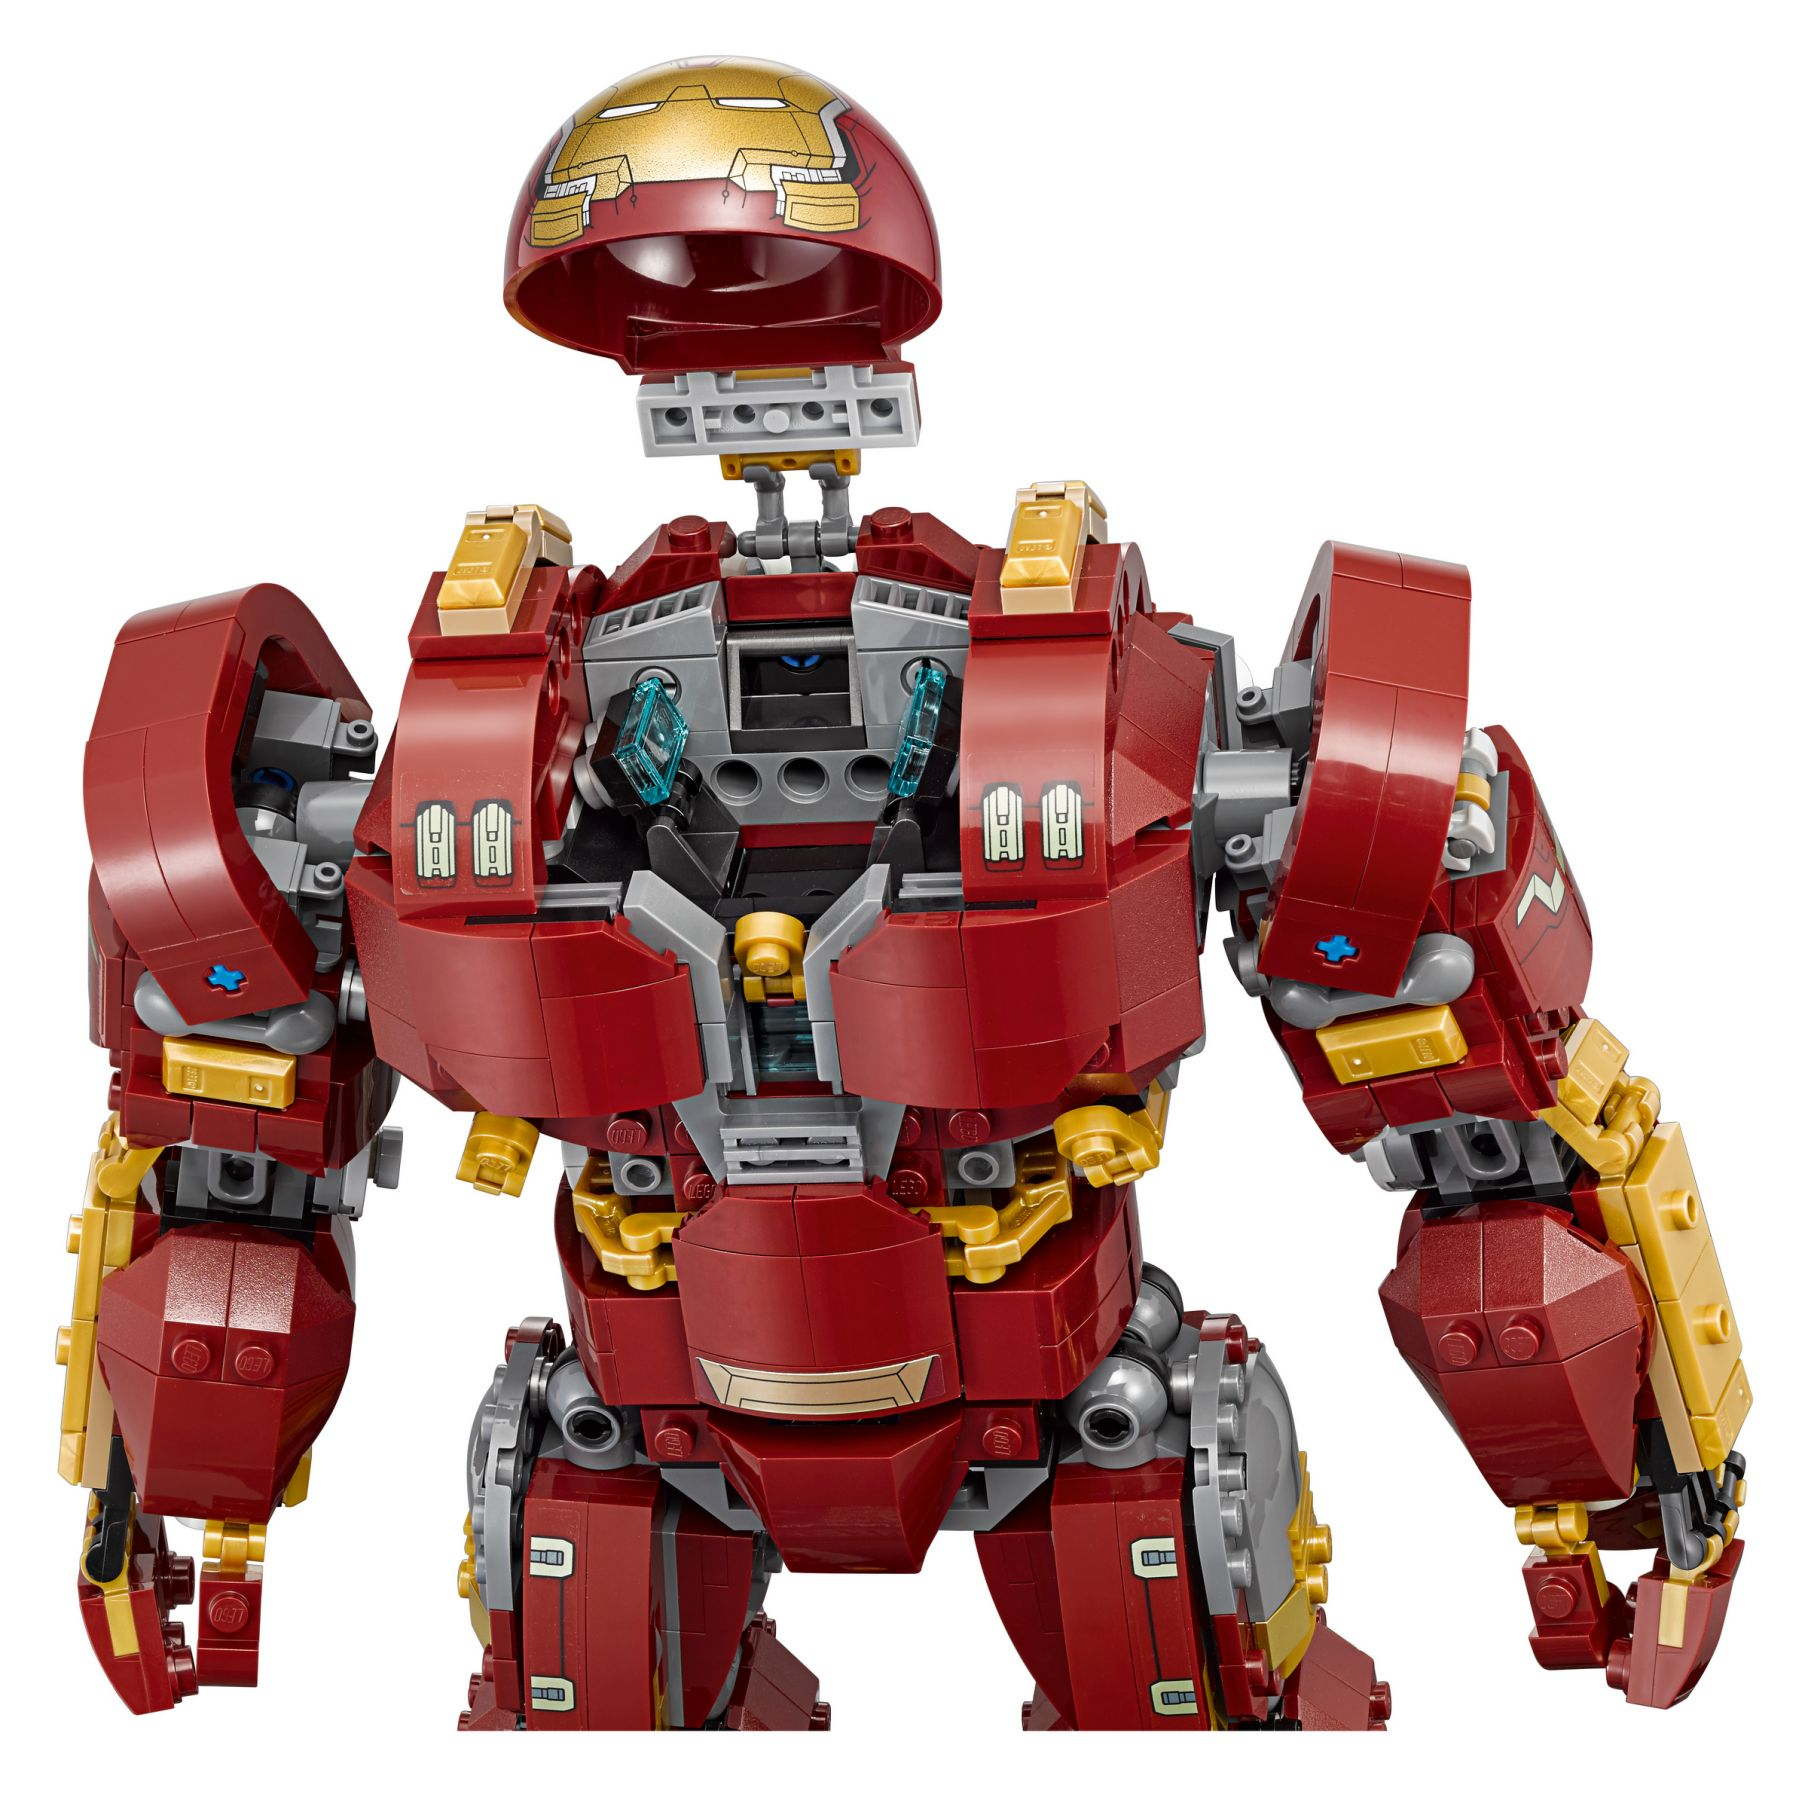 LEGO Super Heroes 76105 Marvel Avengers: Infinity War - The Hulkbuster: Ultron Edition LEGO_76105_alt8.jpg